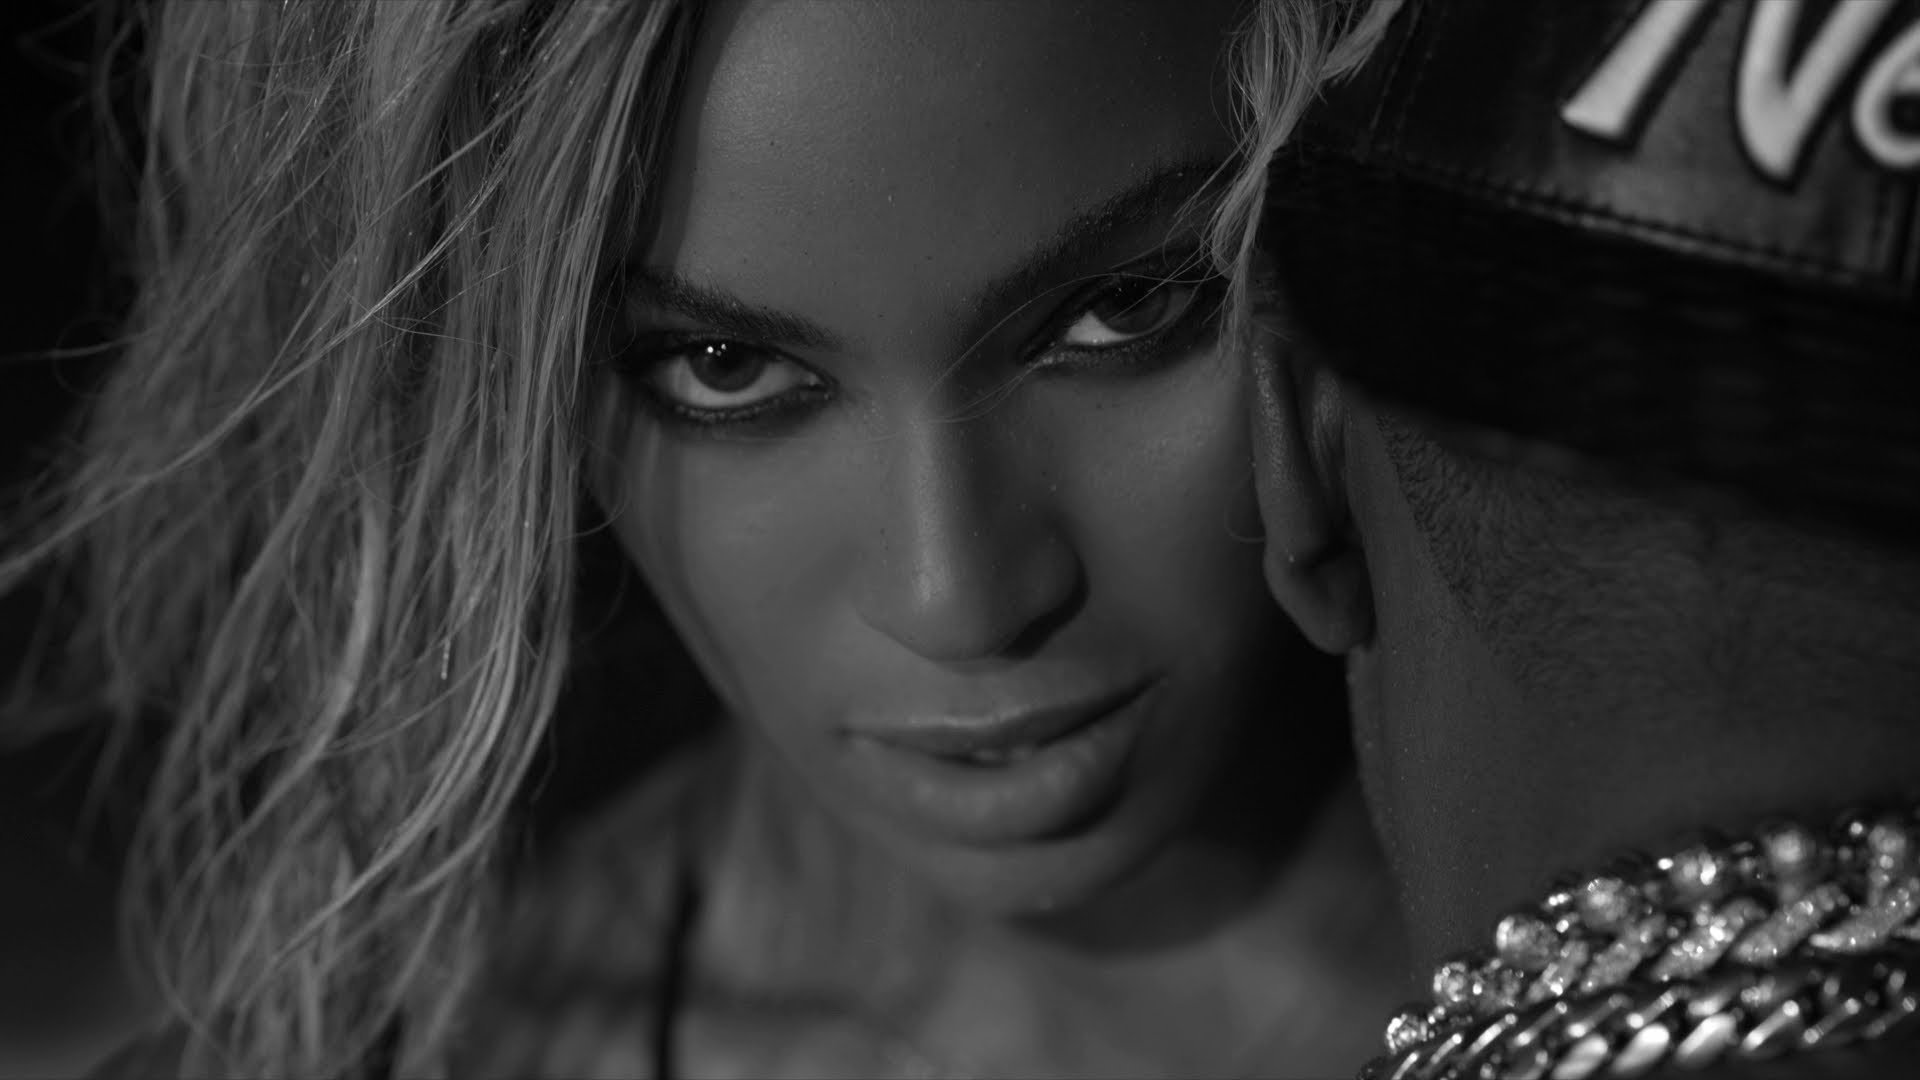 HOW TO HARNESS YOUR DEMON POWERS AND BE MORE PRODUCTIVE LIKE BEYONCÉ